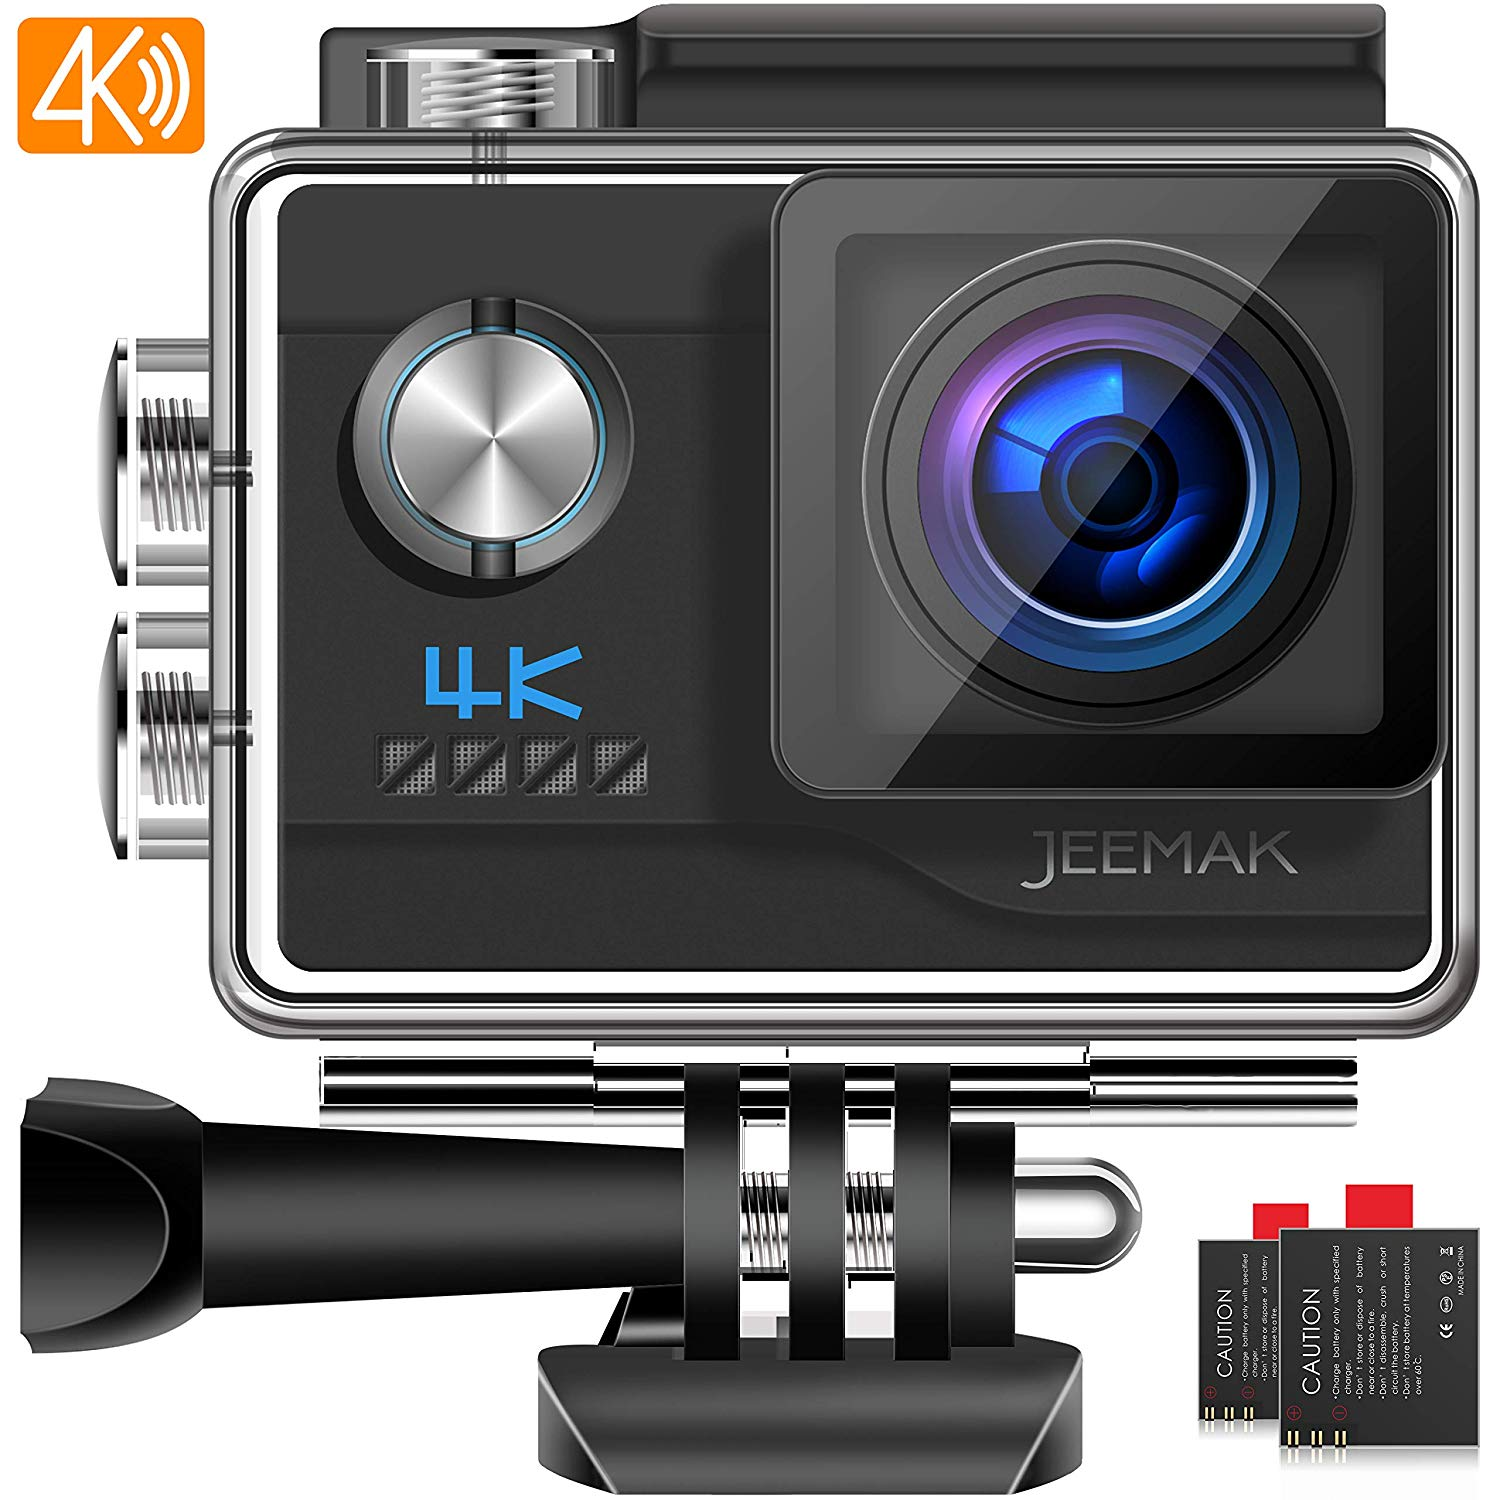 85 99 jeemak action cam 4k uhd 20mp sport kamera wifi. Black Bedroom Furniture Sets. Home Design Ideas